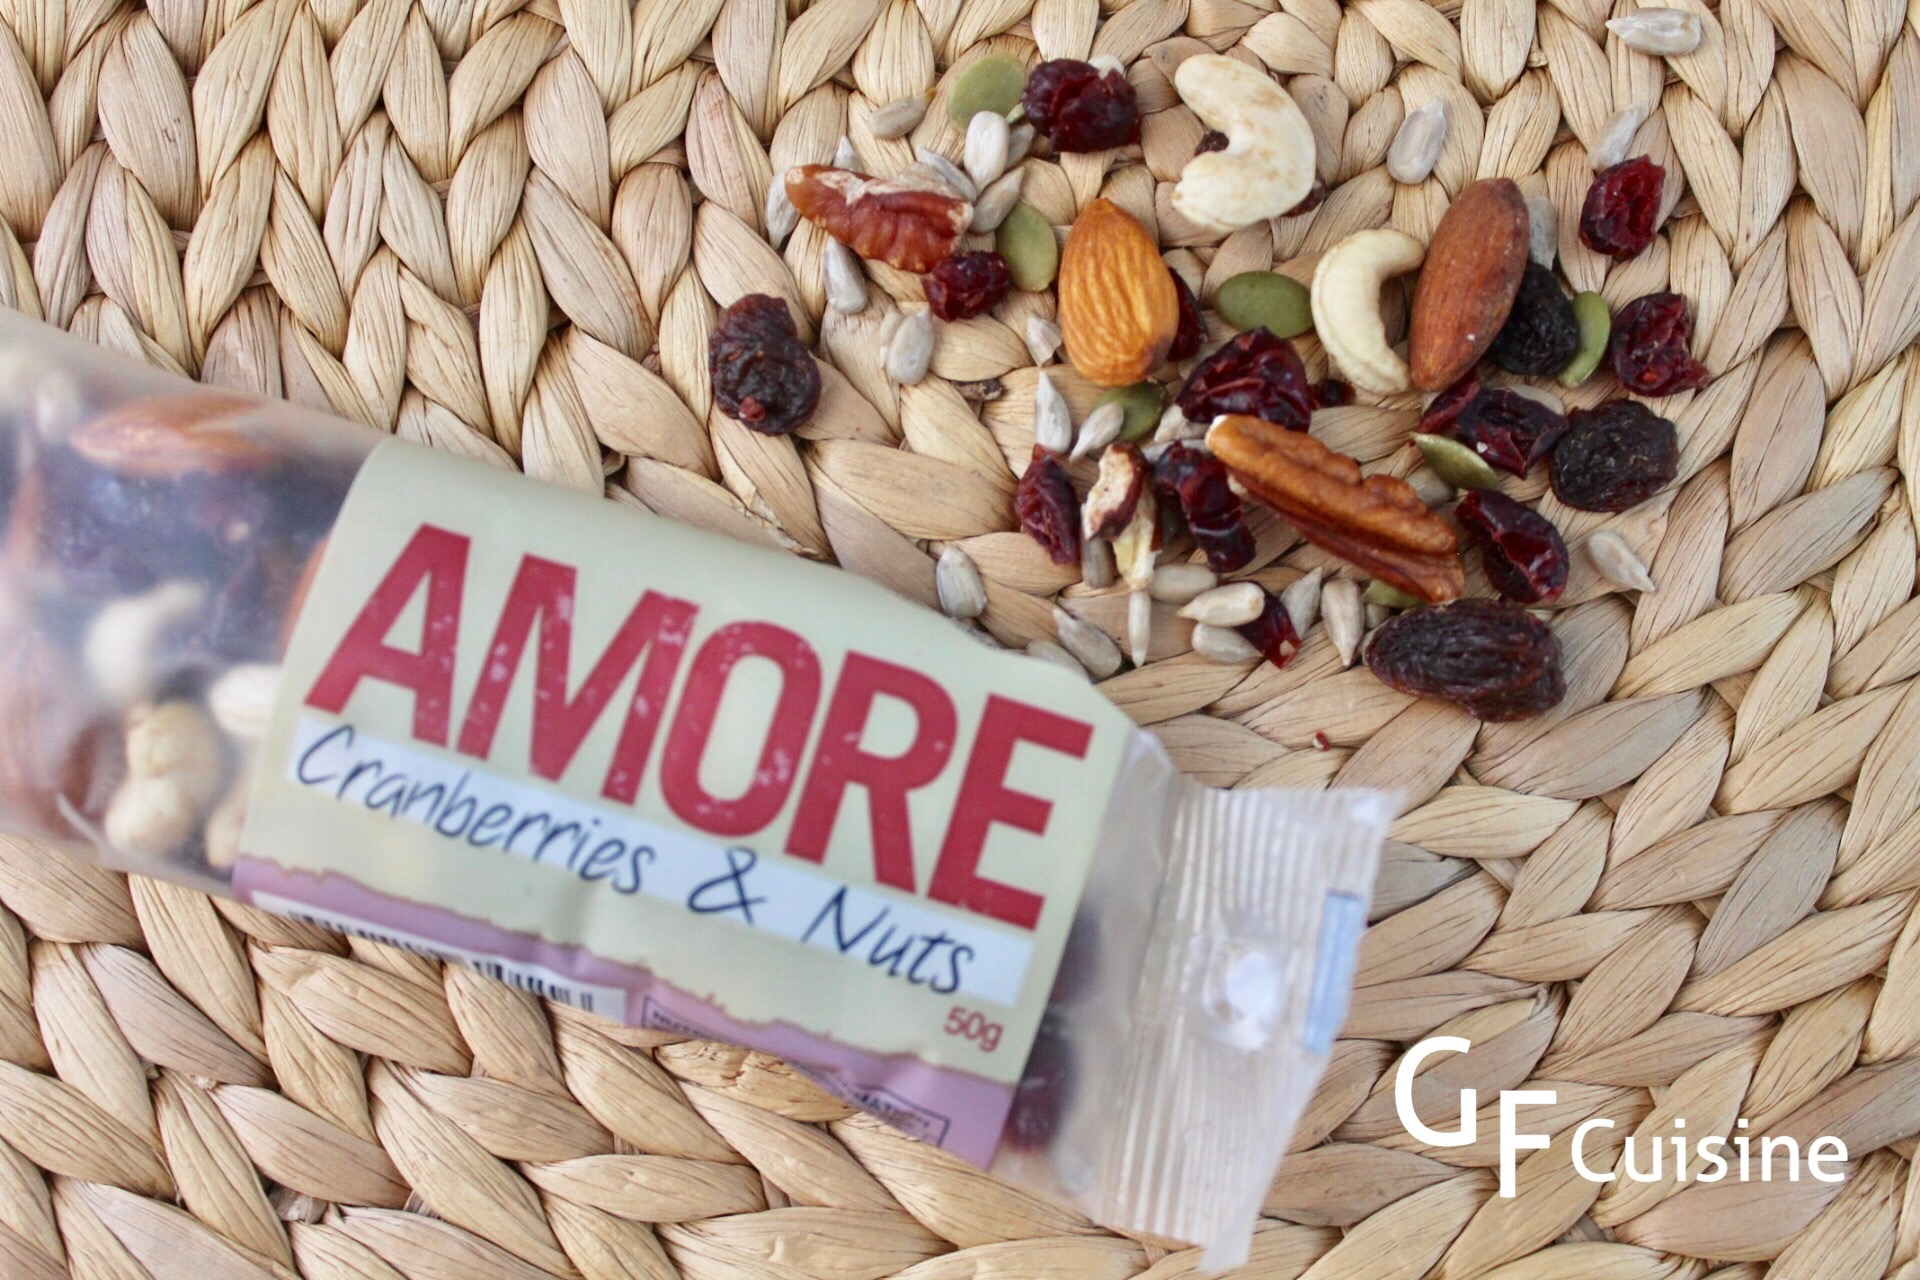 Amore Cranberries & Nuts